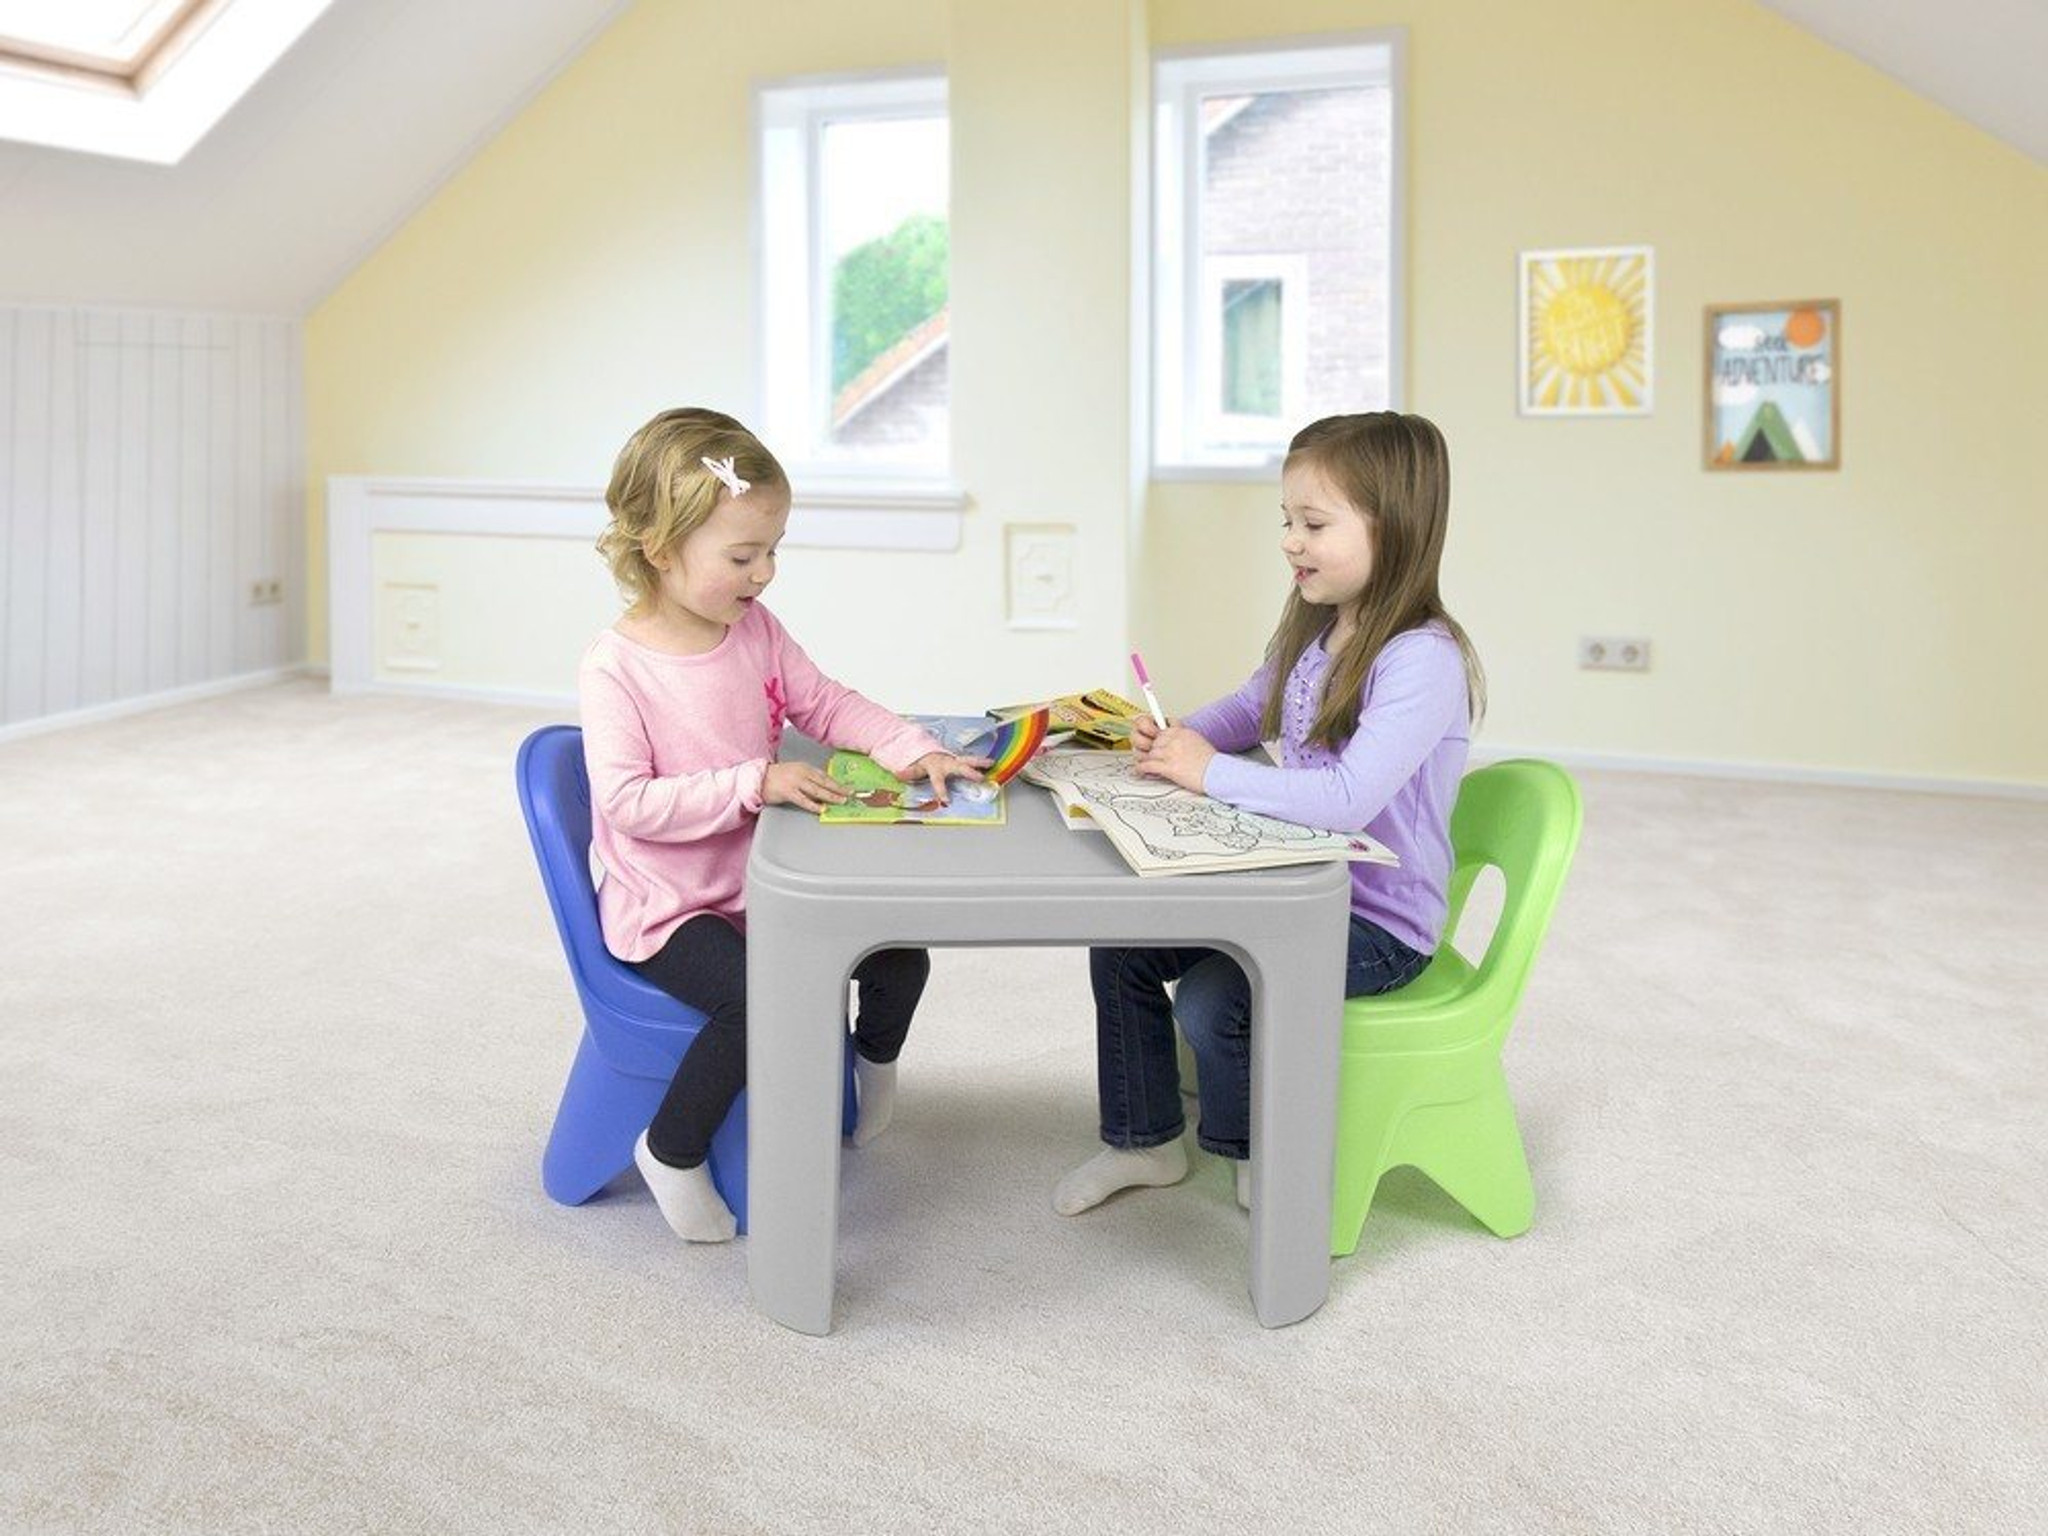 ... Simplay3 Play Around Table and Chair Set for toddler activities like puzzle solving and arts and & Play Around Table \u0026 Chair Set | Kids Table and Chairs | Simplay3